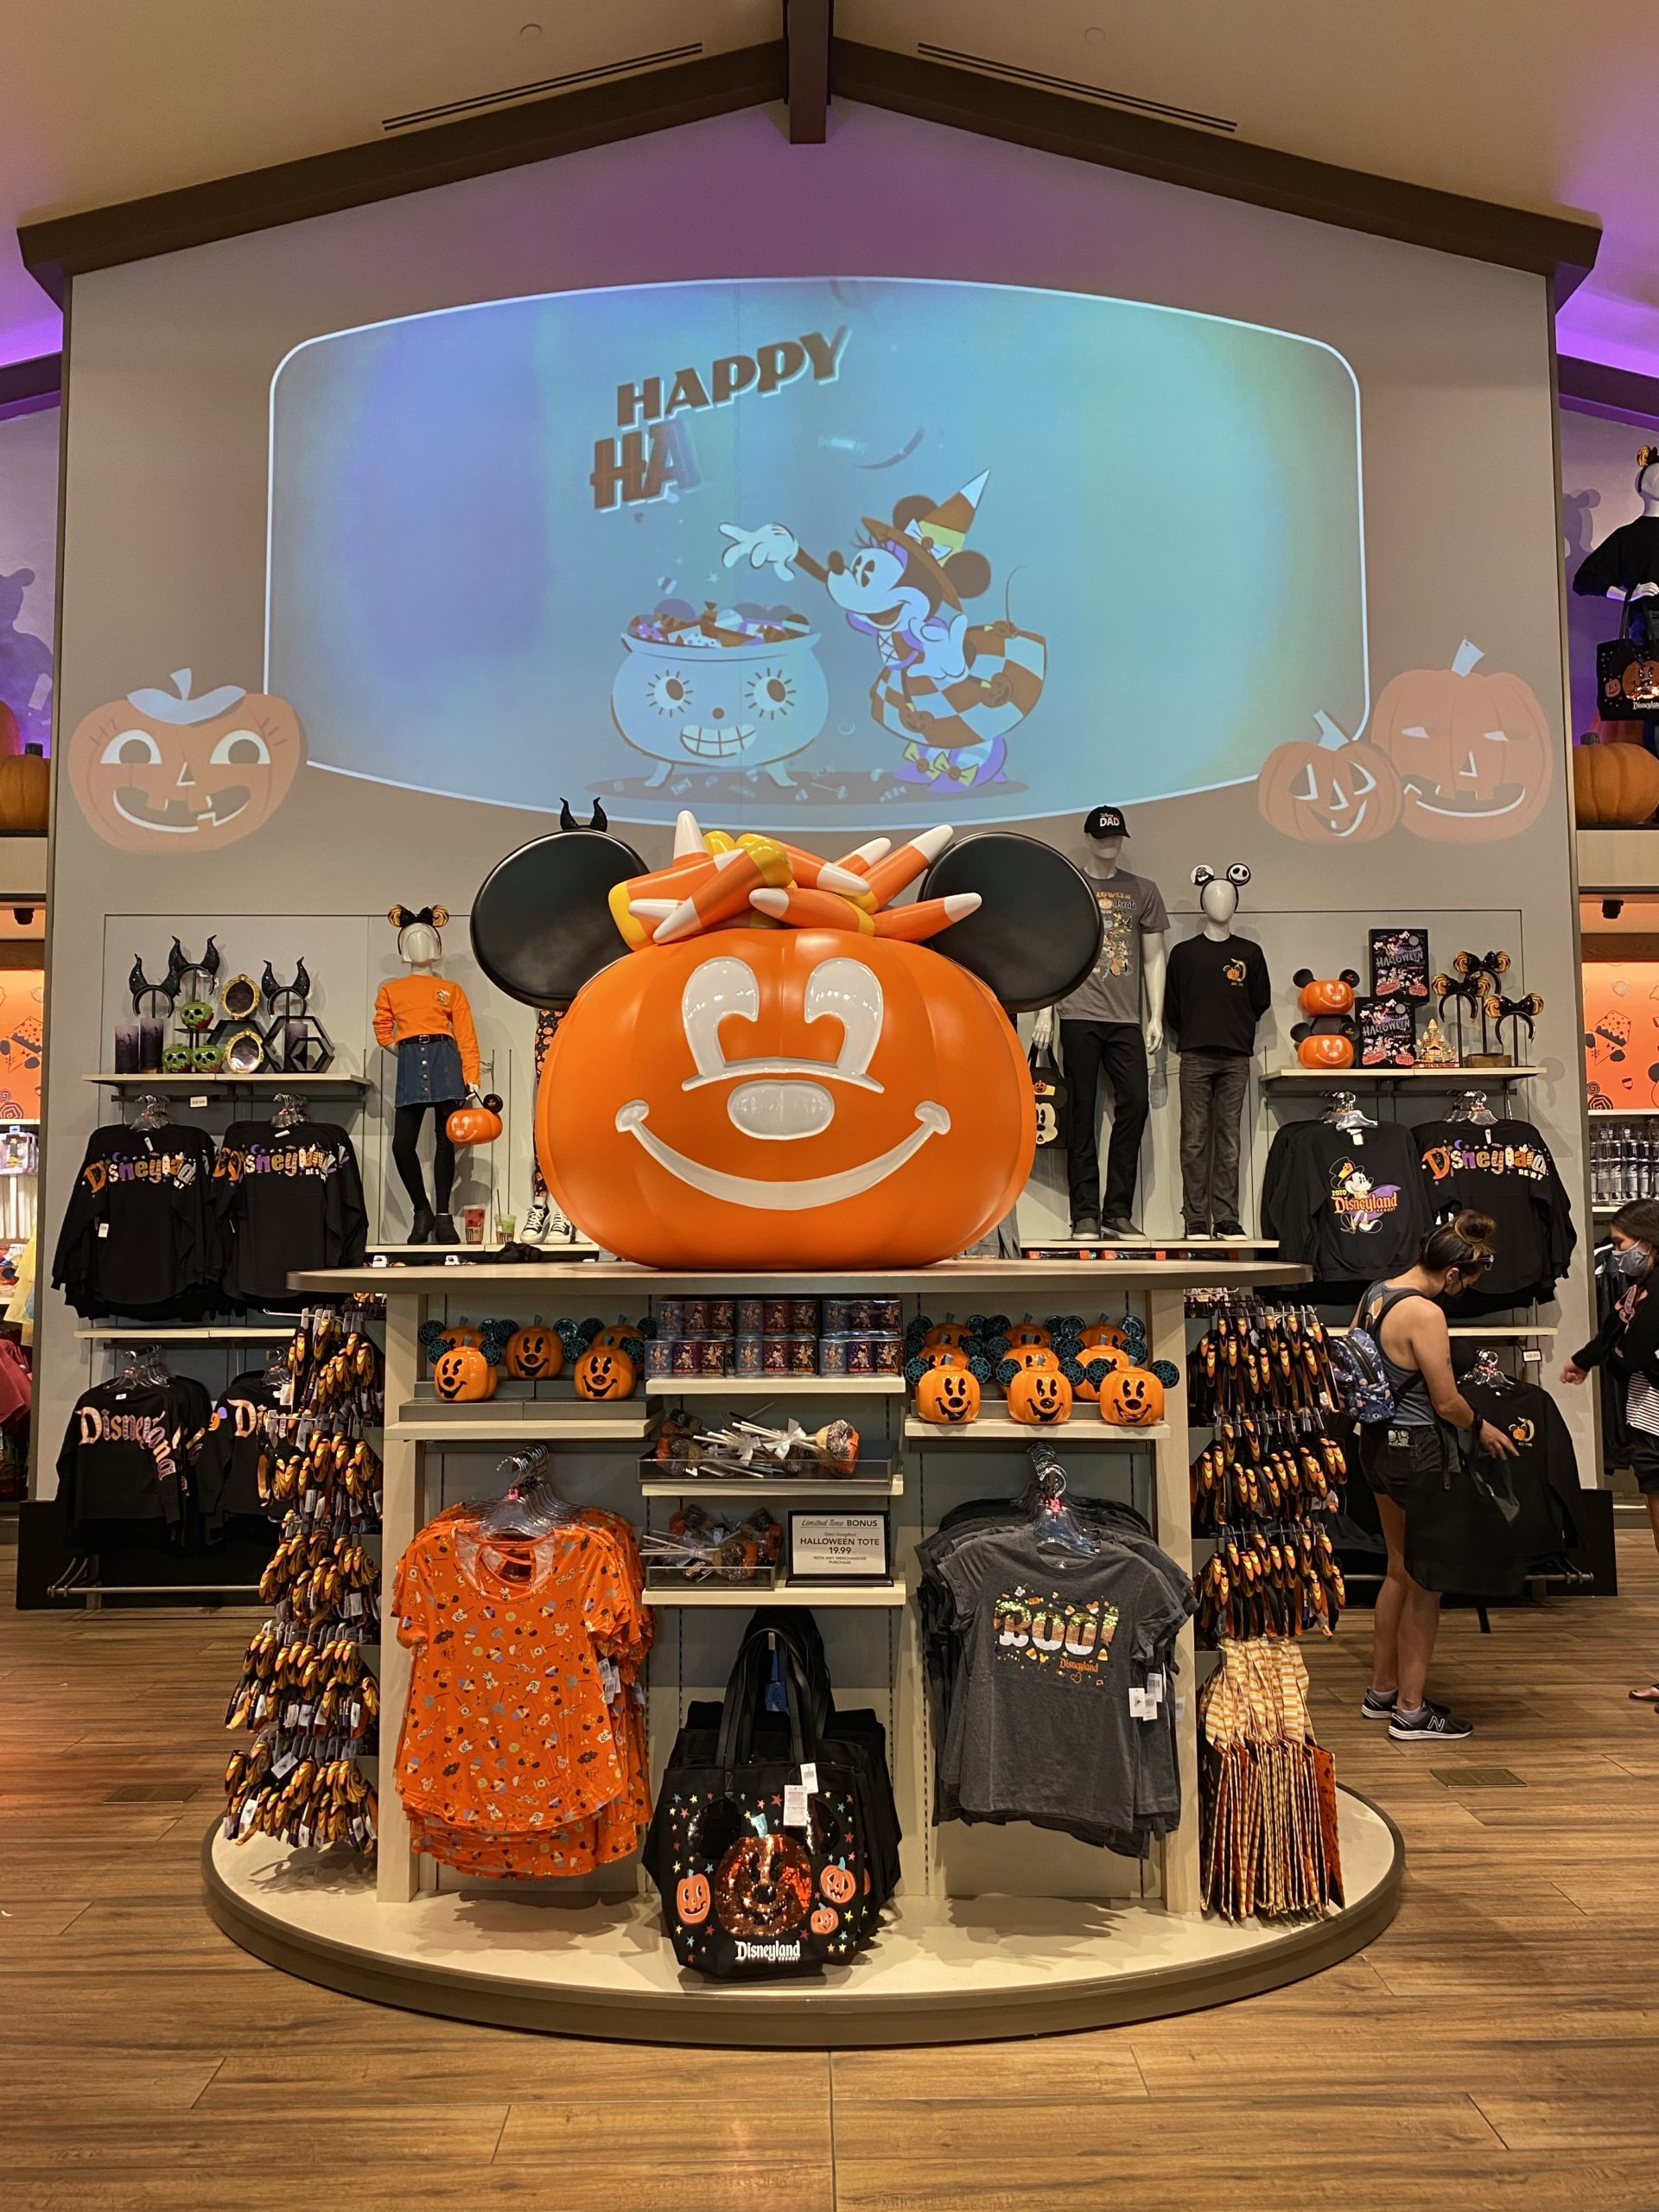 Disneyland Halloween 2020 Purchase Time Halloween 2020 Merchandise at World of Disney | Disneyland Daily